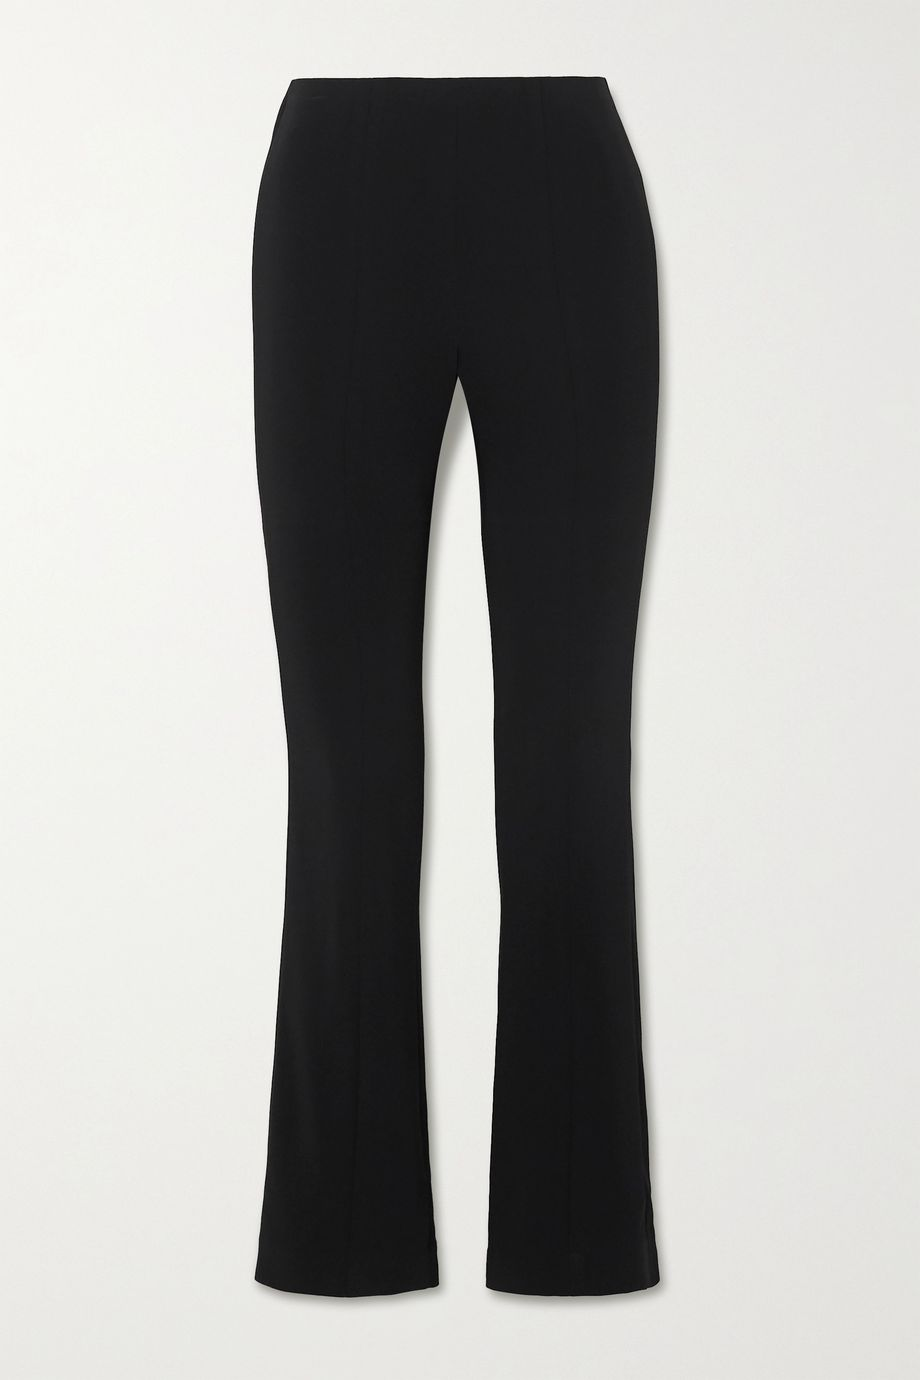 Co Crepe flared pants